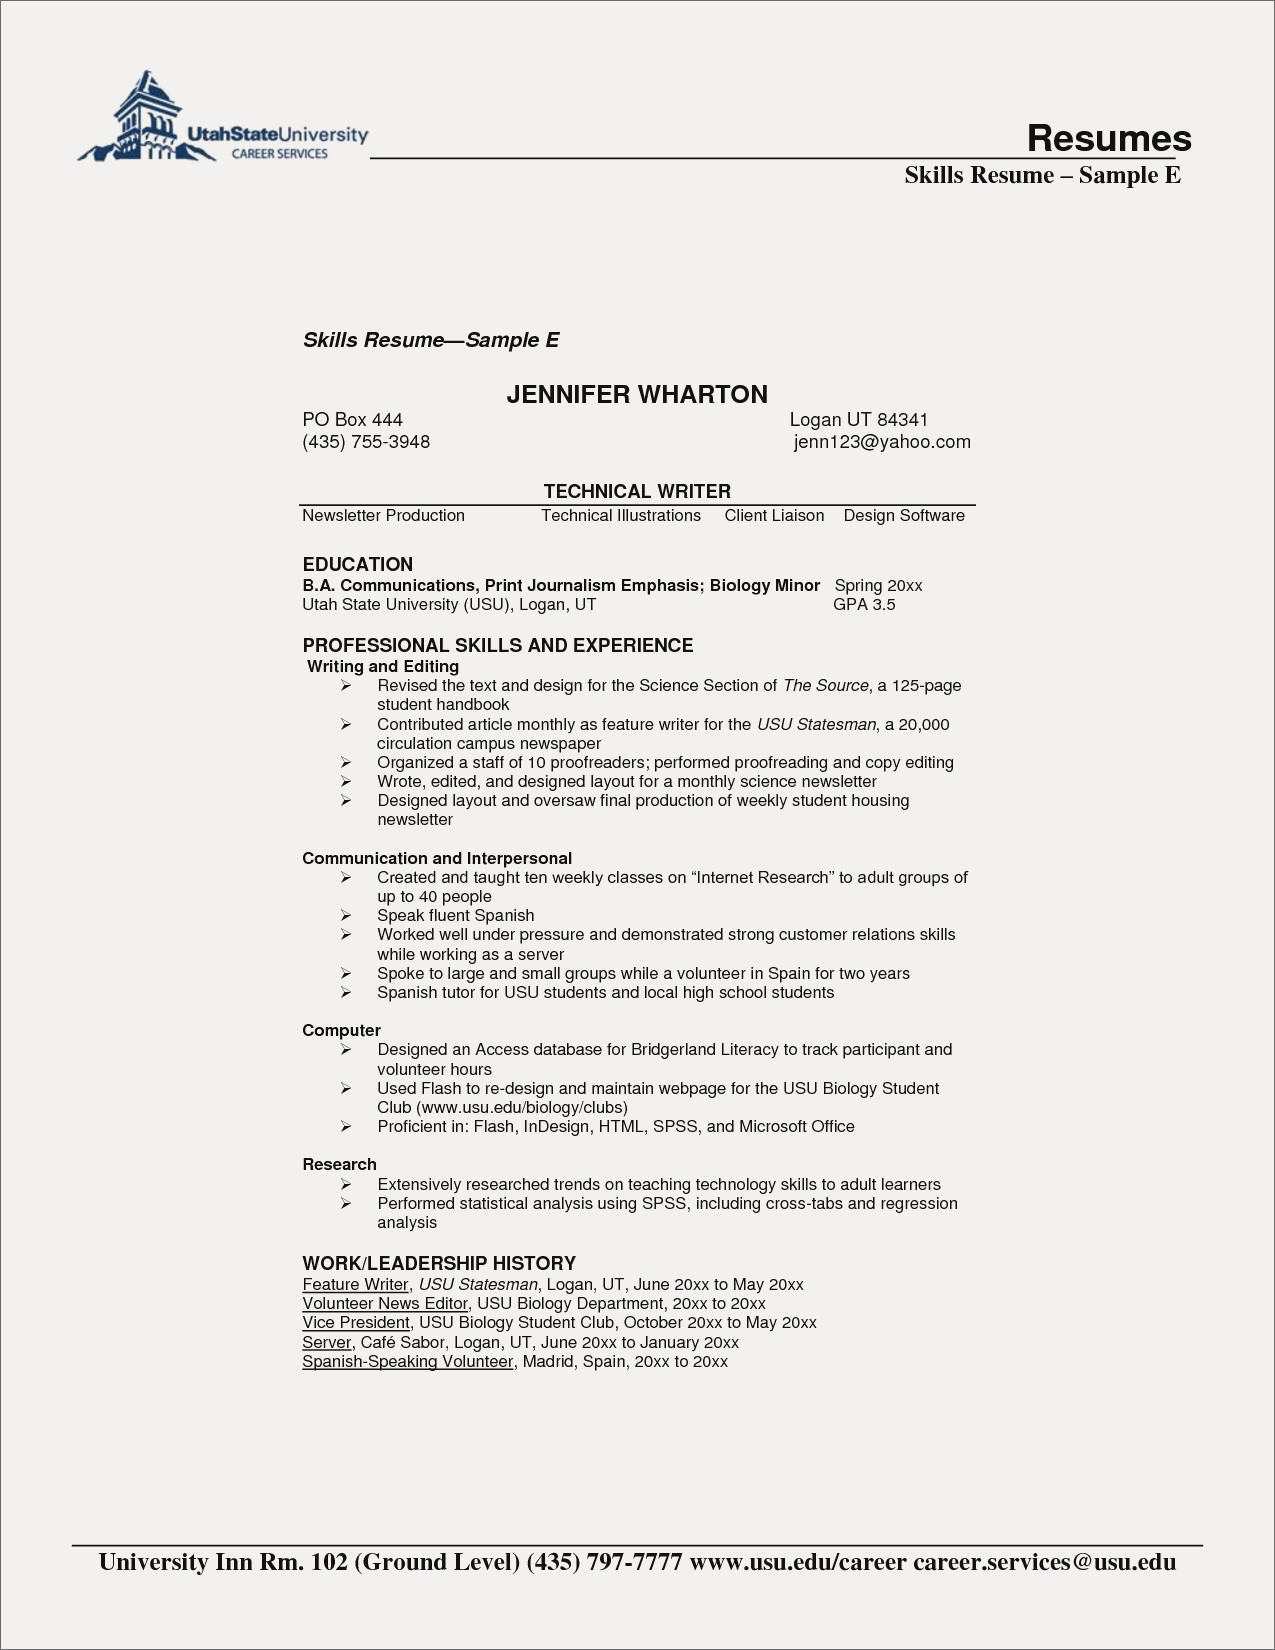 Resume Writing Tips - Cheap Resumes Fresh Puter Skills Example Unique Examples Resumes